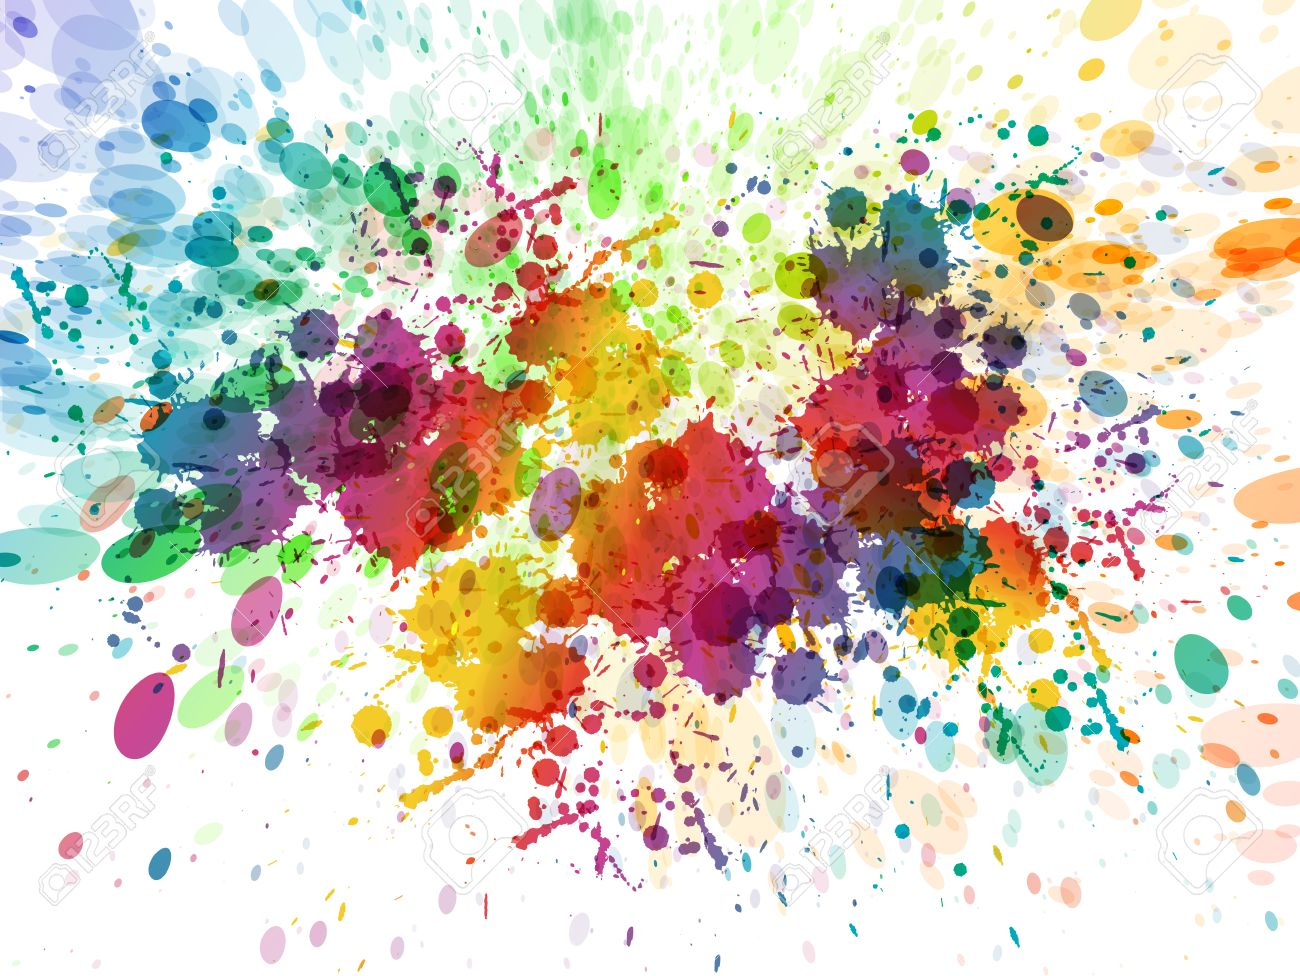 Abstract color splash background - 59435248